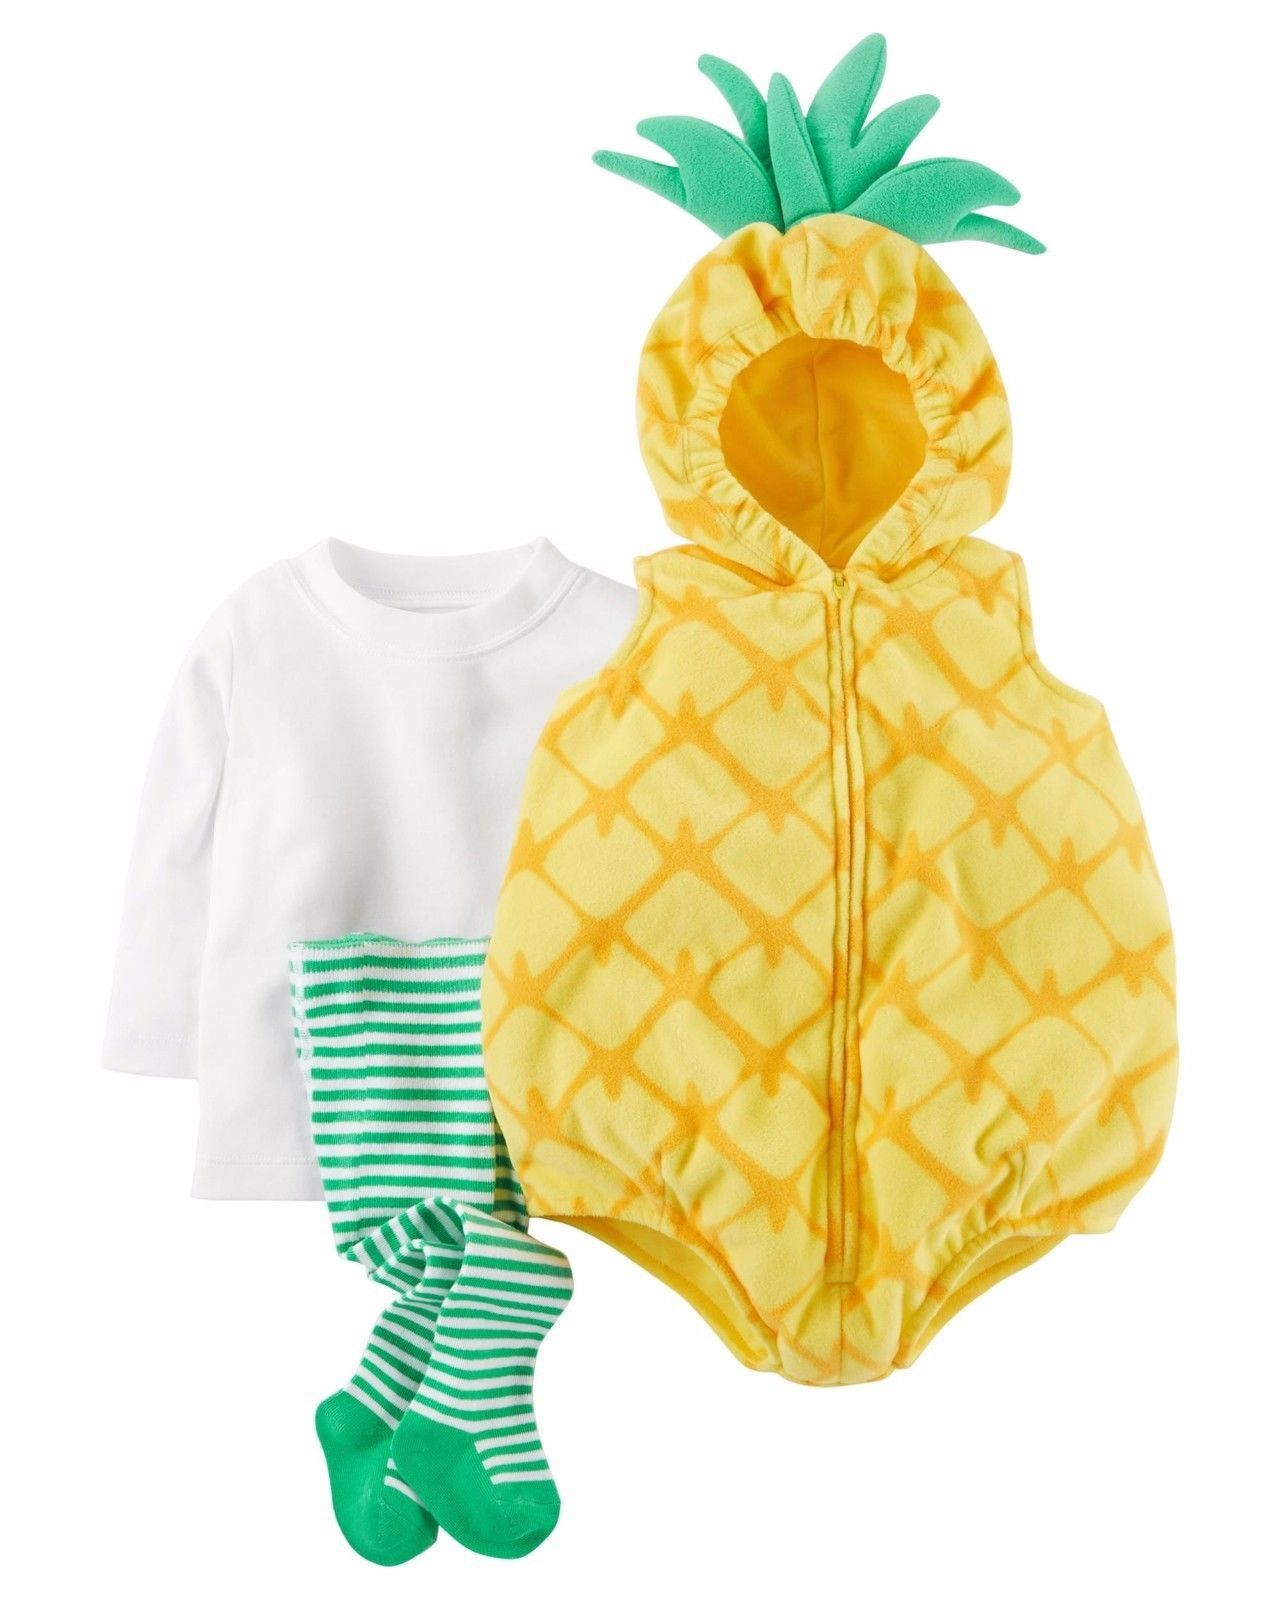 NEW NWT Carters Girls Pineapple Halloween Costume Size 24 Months